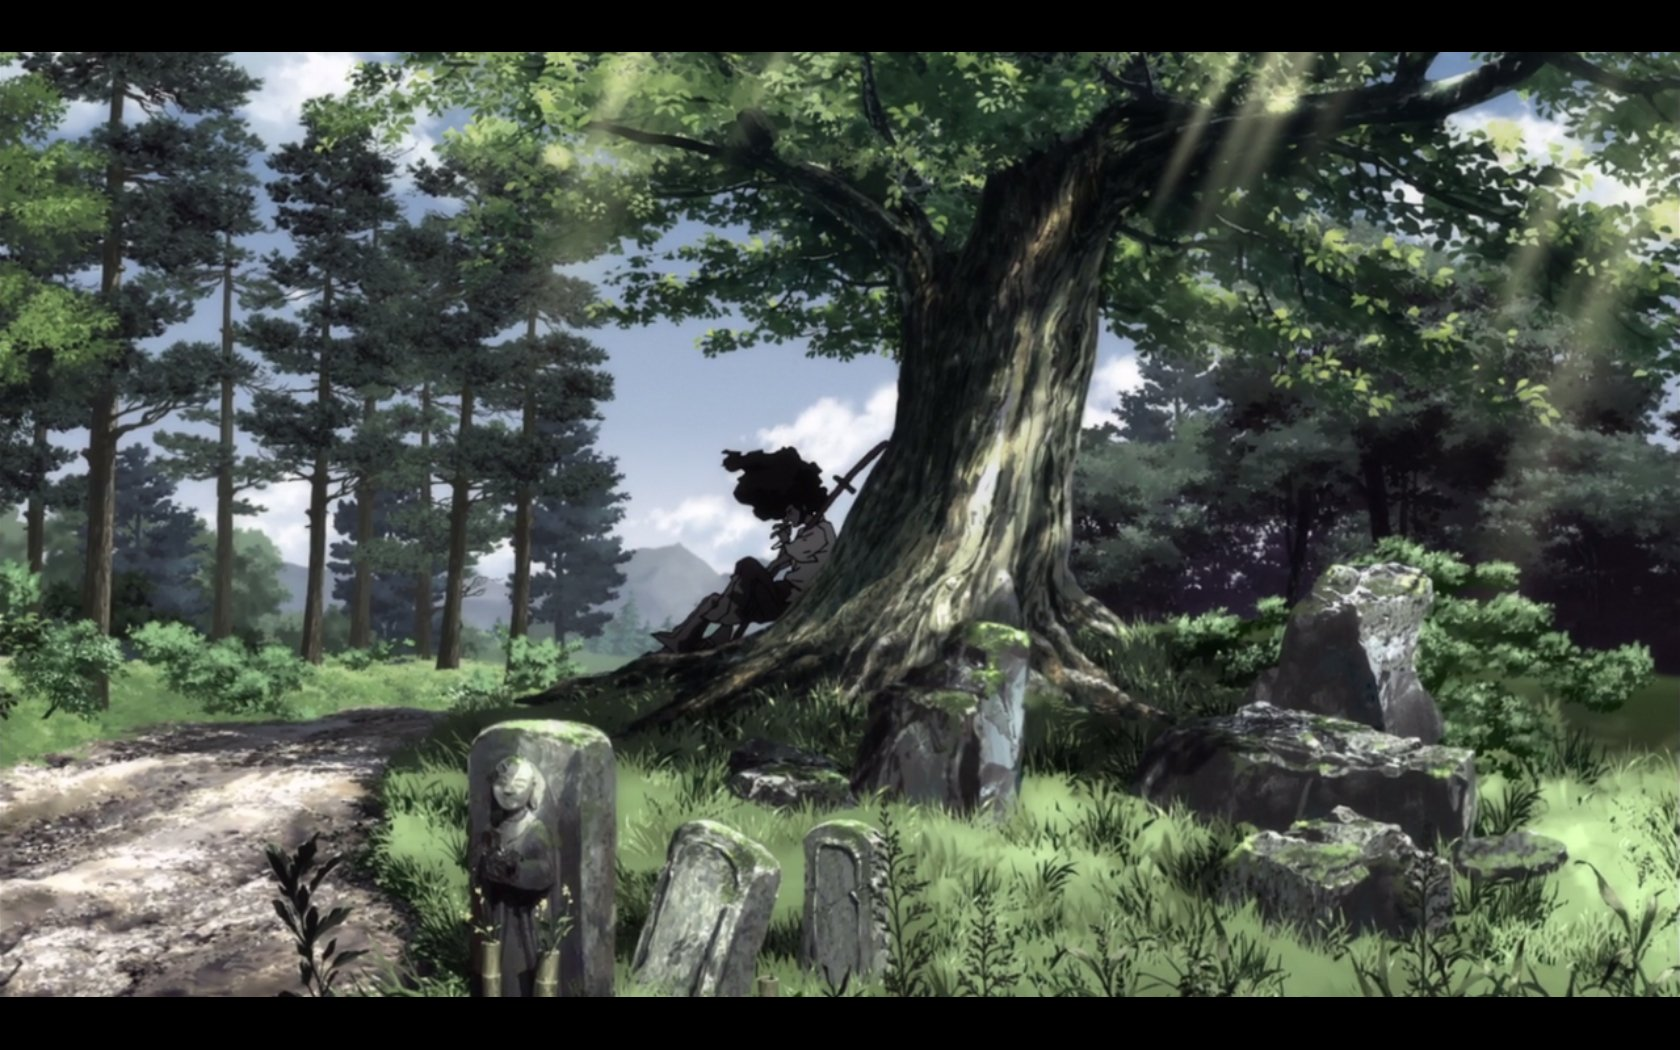 Afro samurai wallpaper and background image 1680x1050 - Anime forest background ...